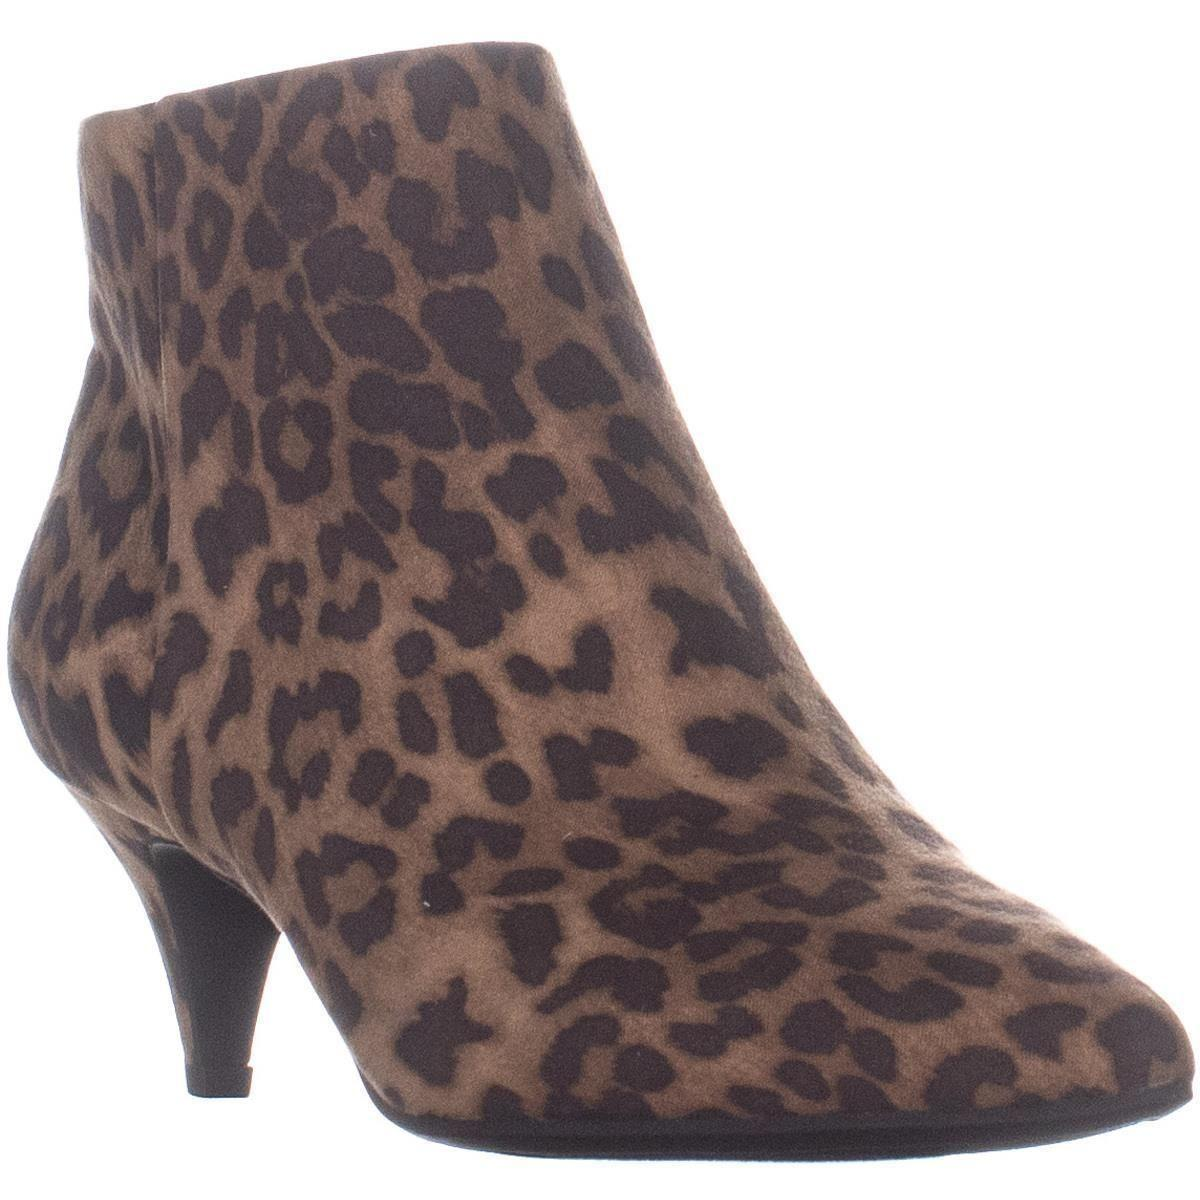 37376ab6f Lyst - Sam Edelman Circus Kirby Kitten Heel Ankle Boots in Brown